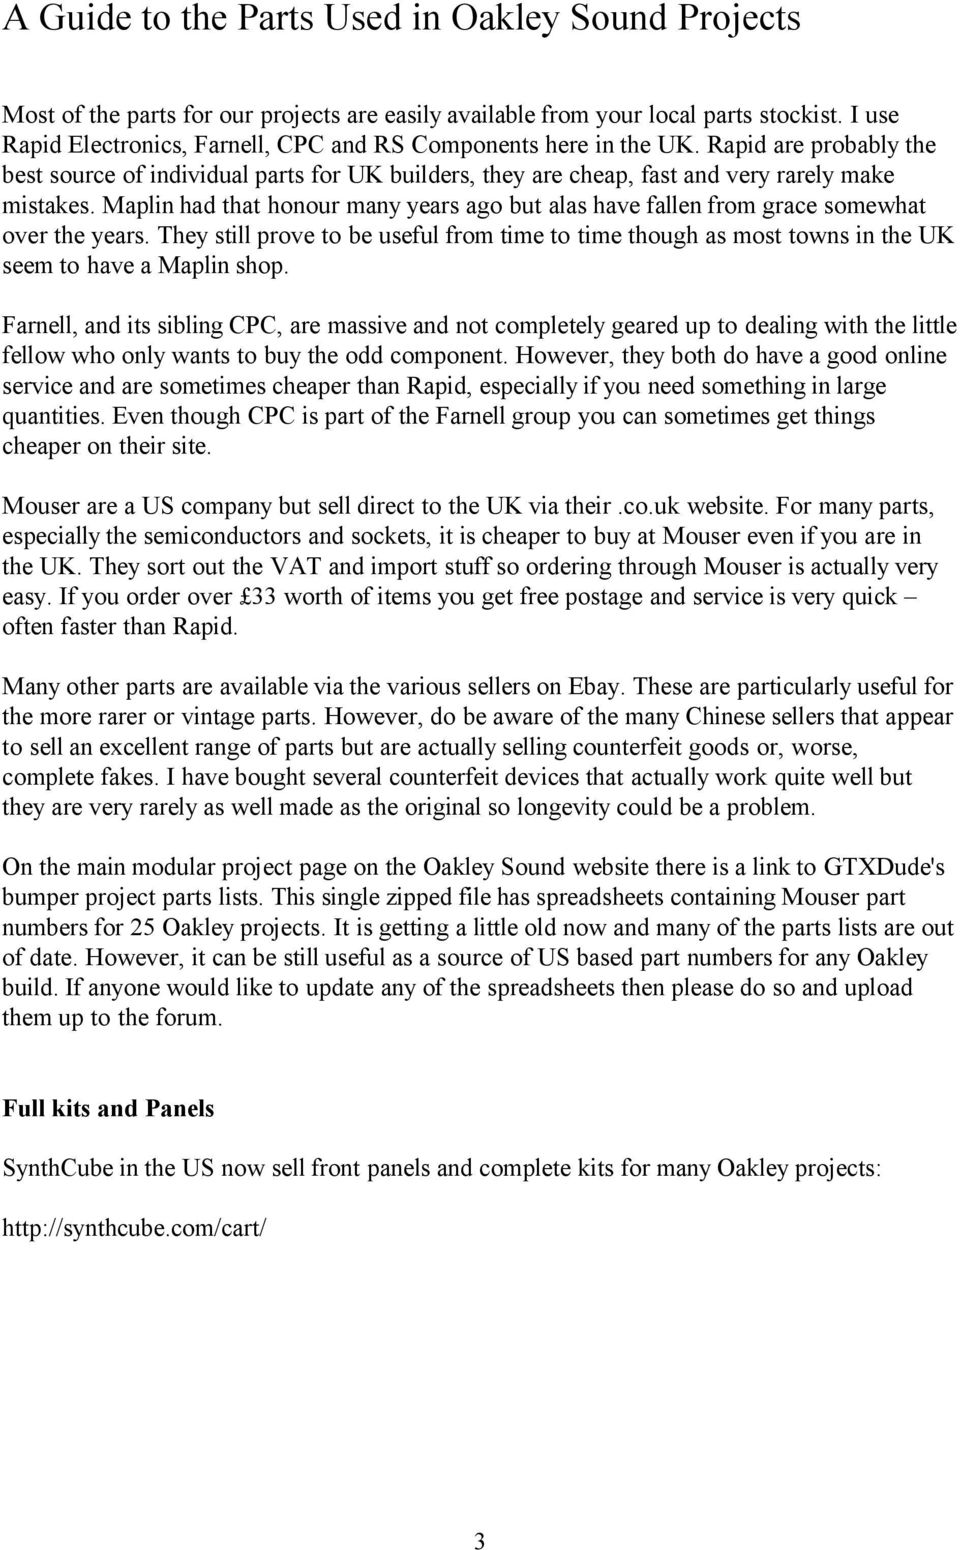 Parts Guide  Oakley Sound Systems  A guide to buying parts